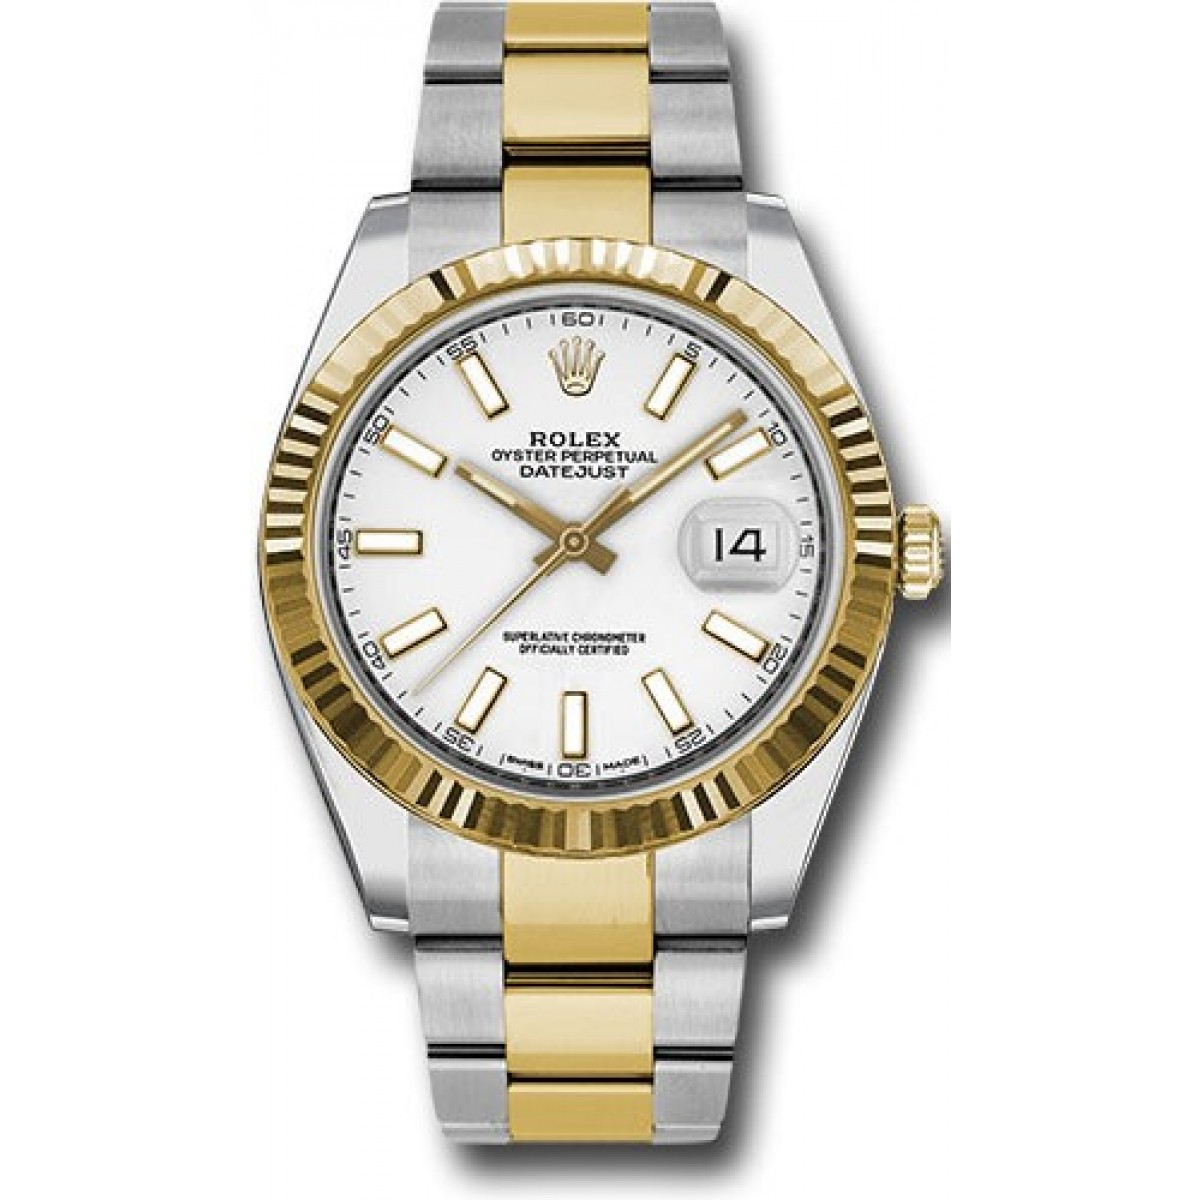 rolex datejust 41mm stainless steel and yellow gold 126333. Black Bedroom Furniture Sets. Home Design Ideas